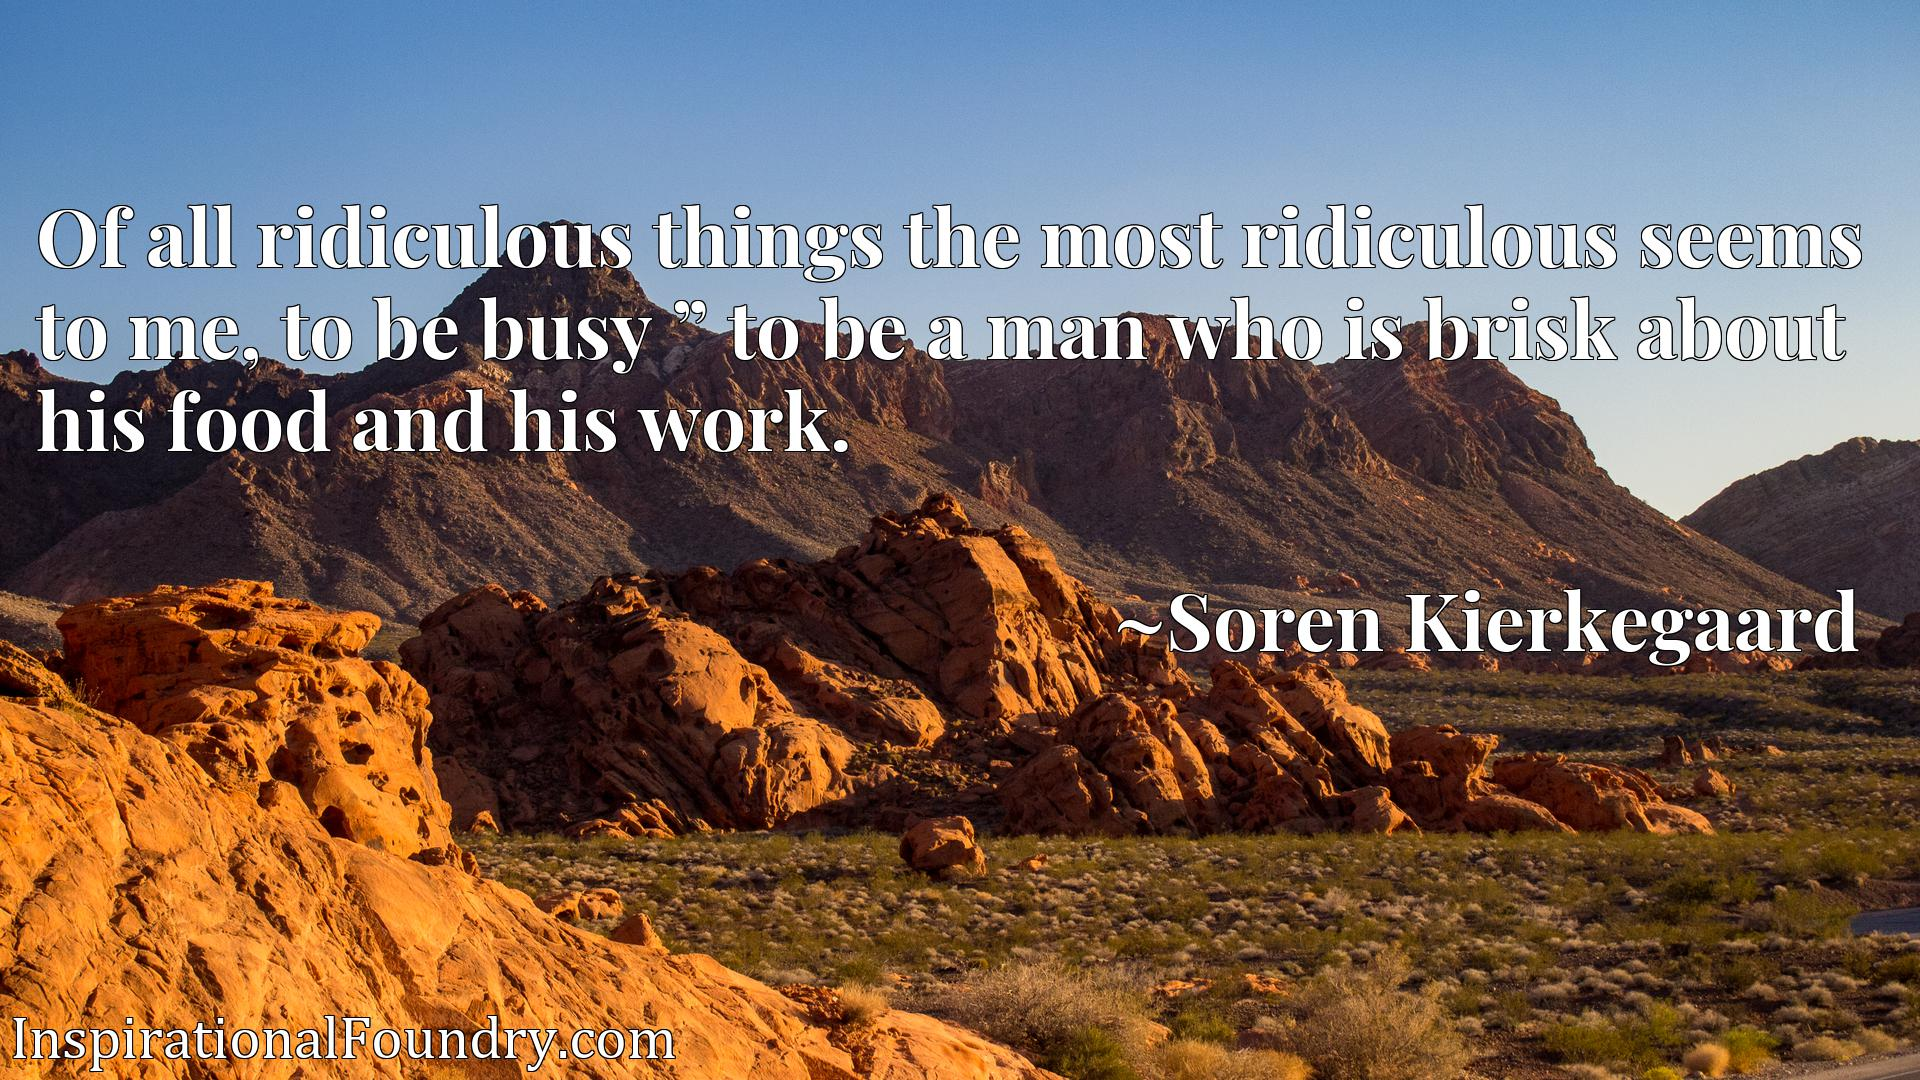 """Of all ridiculous things the most ridiculous seems to me, to be busy """" to be a man who is brisk about his food and his work."""